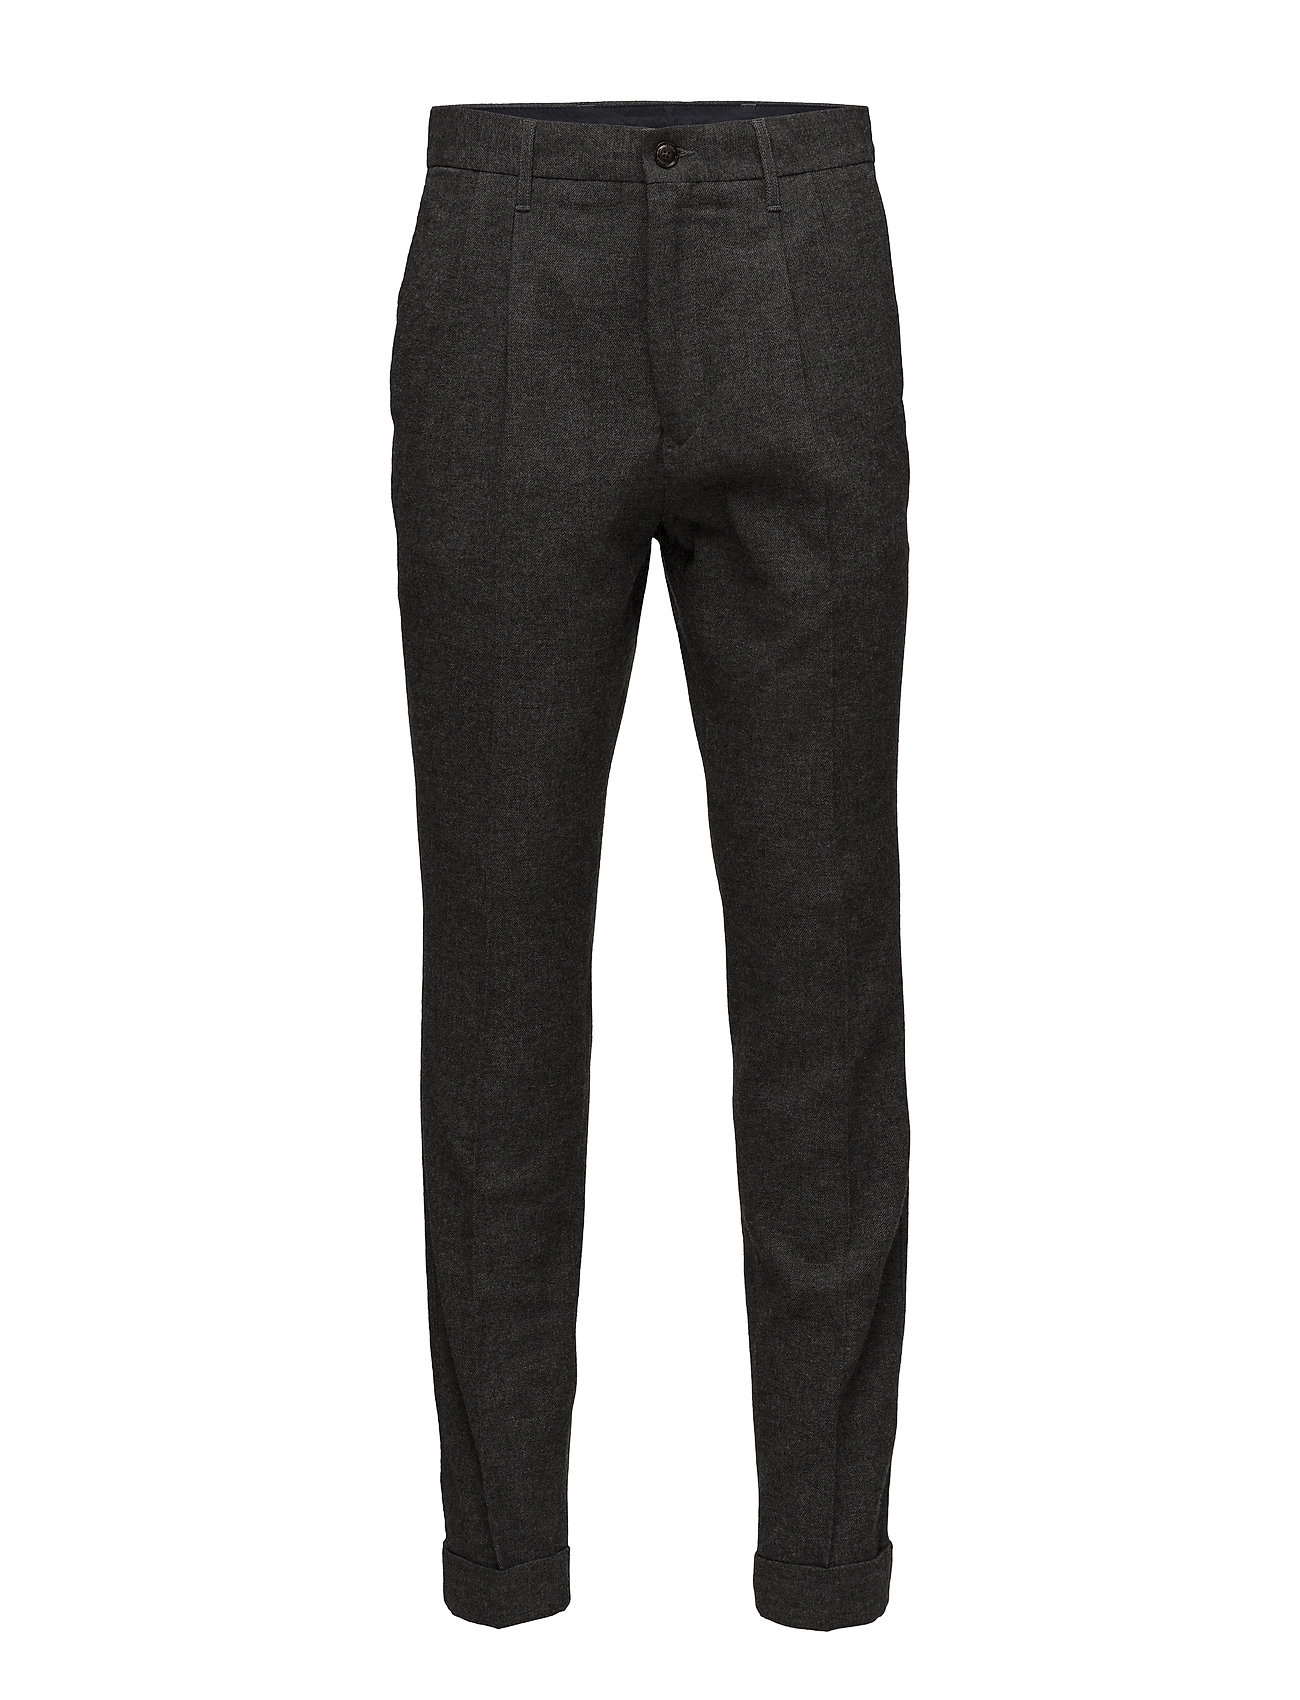 5087151f9 Tapered Cropped Wool Twill Pant (Charcoal Htr) (96.85 €) - Tommy ...